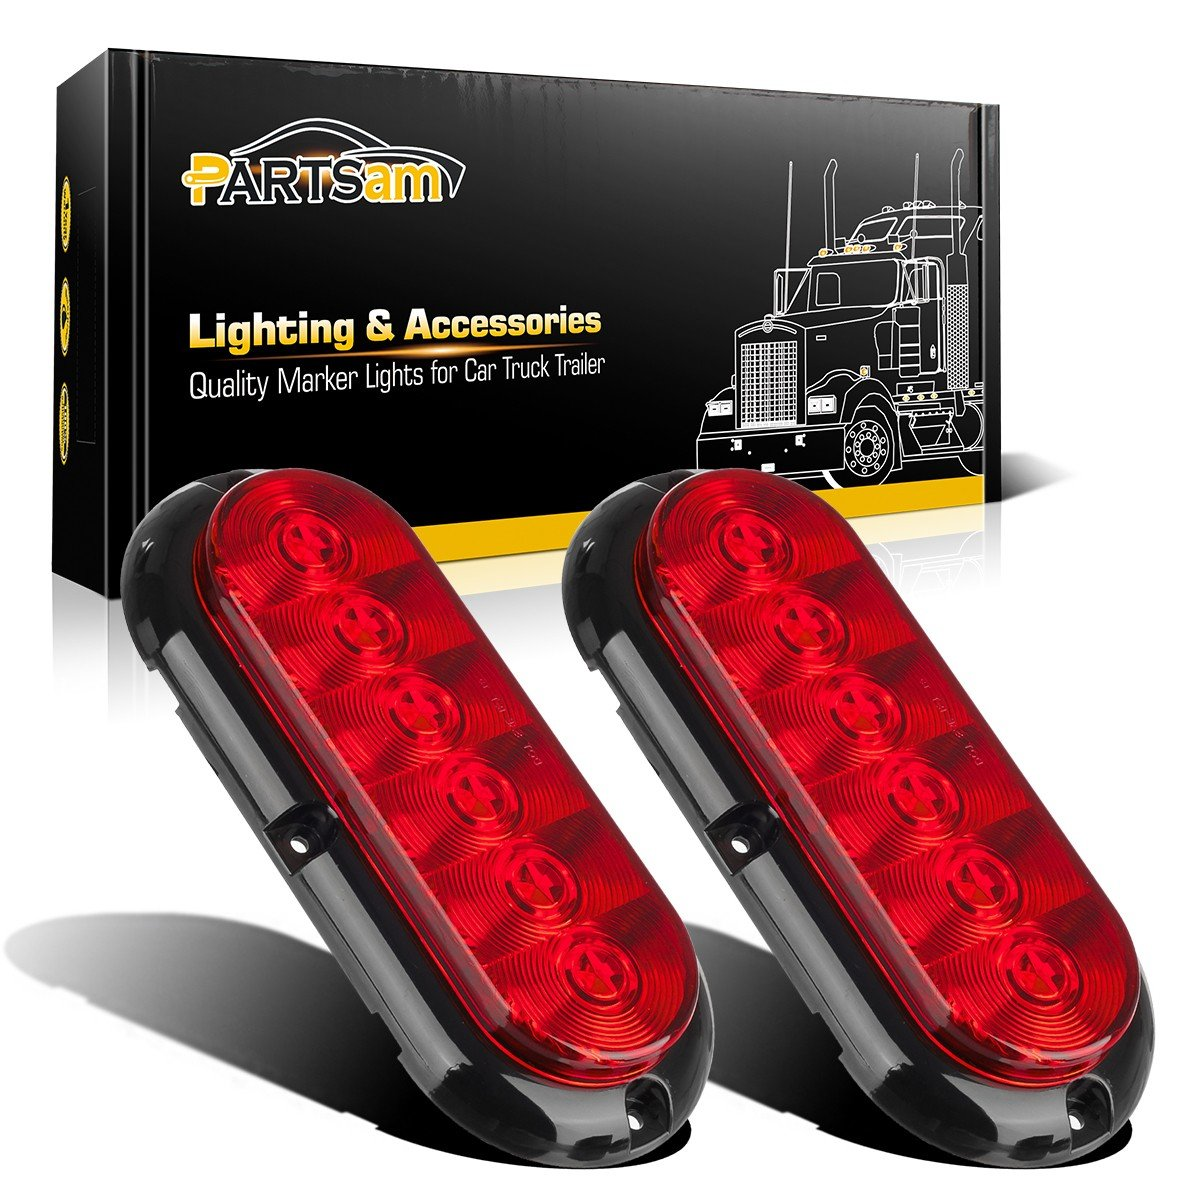 Partsam 2PCS Trailer Truck Boat Bus Red LED 6' Inch Oval Stop Turn Tail Brake Light DOT Certified Marker Lights Sealed Surface Mount 12V Waterproof for RV Jeep Trucks